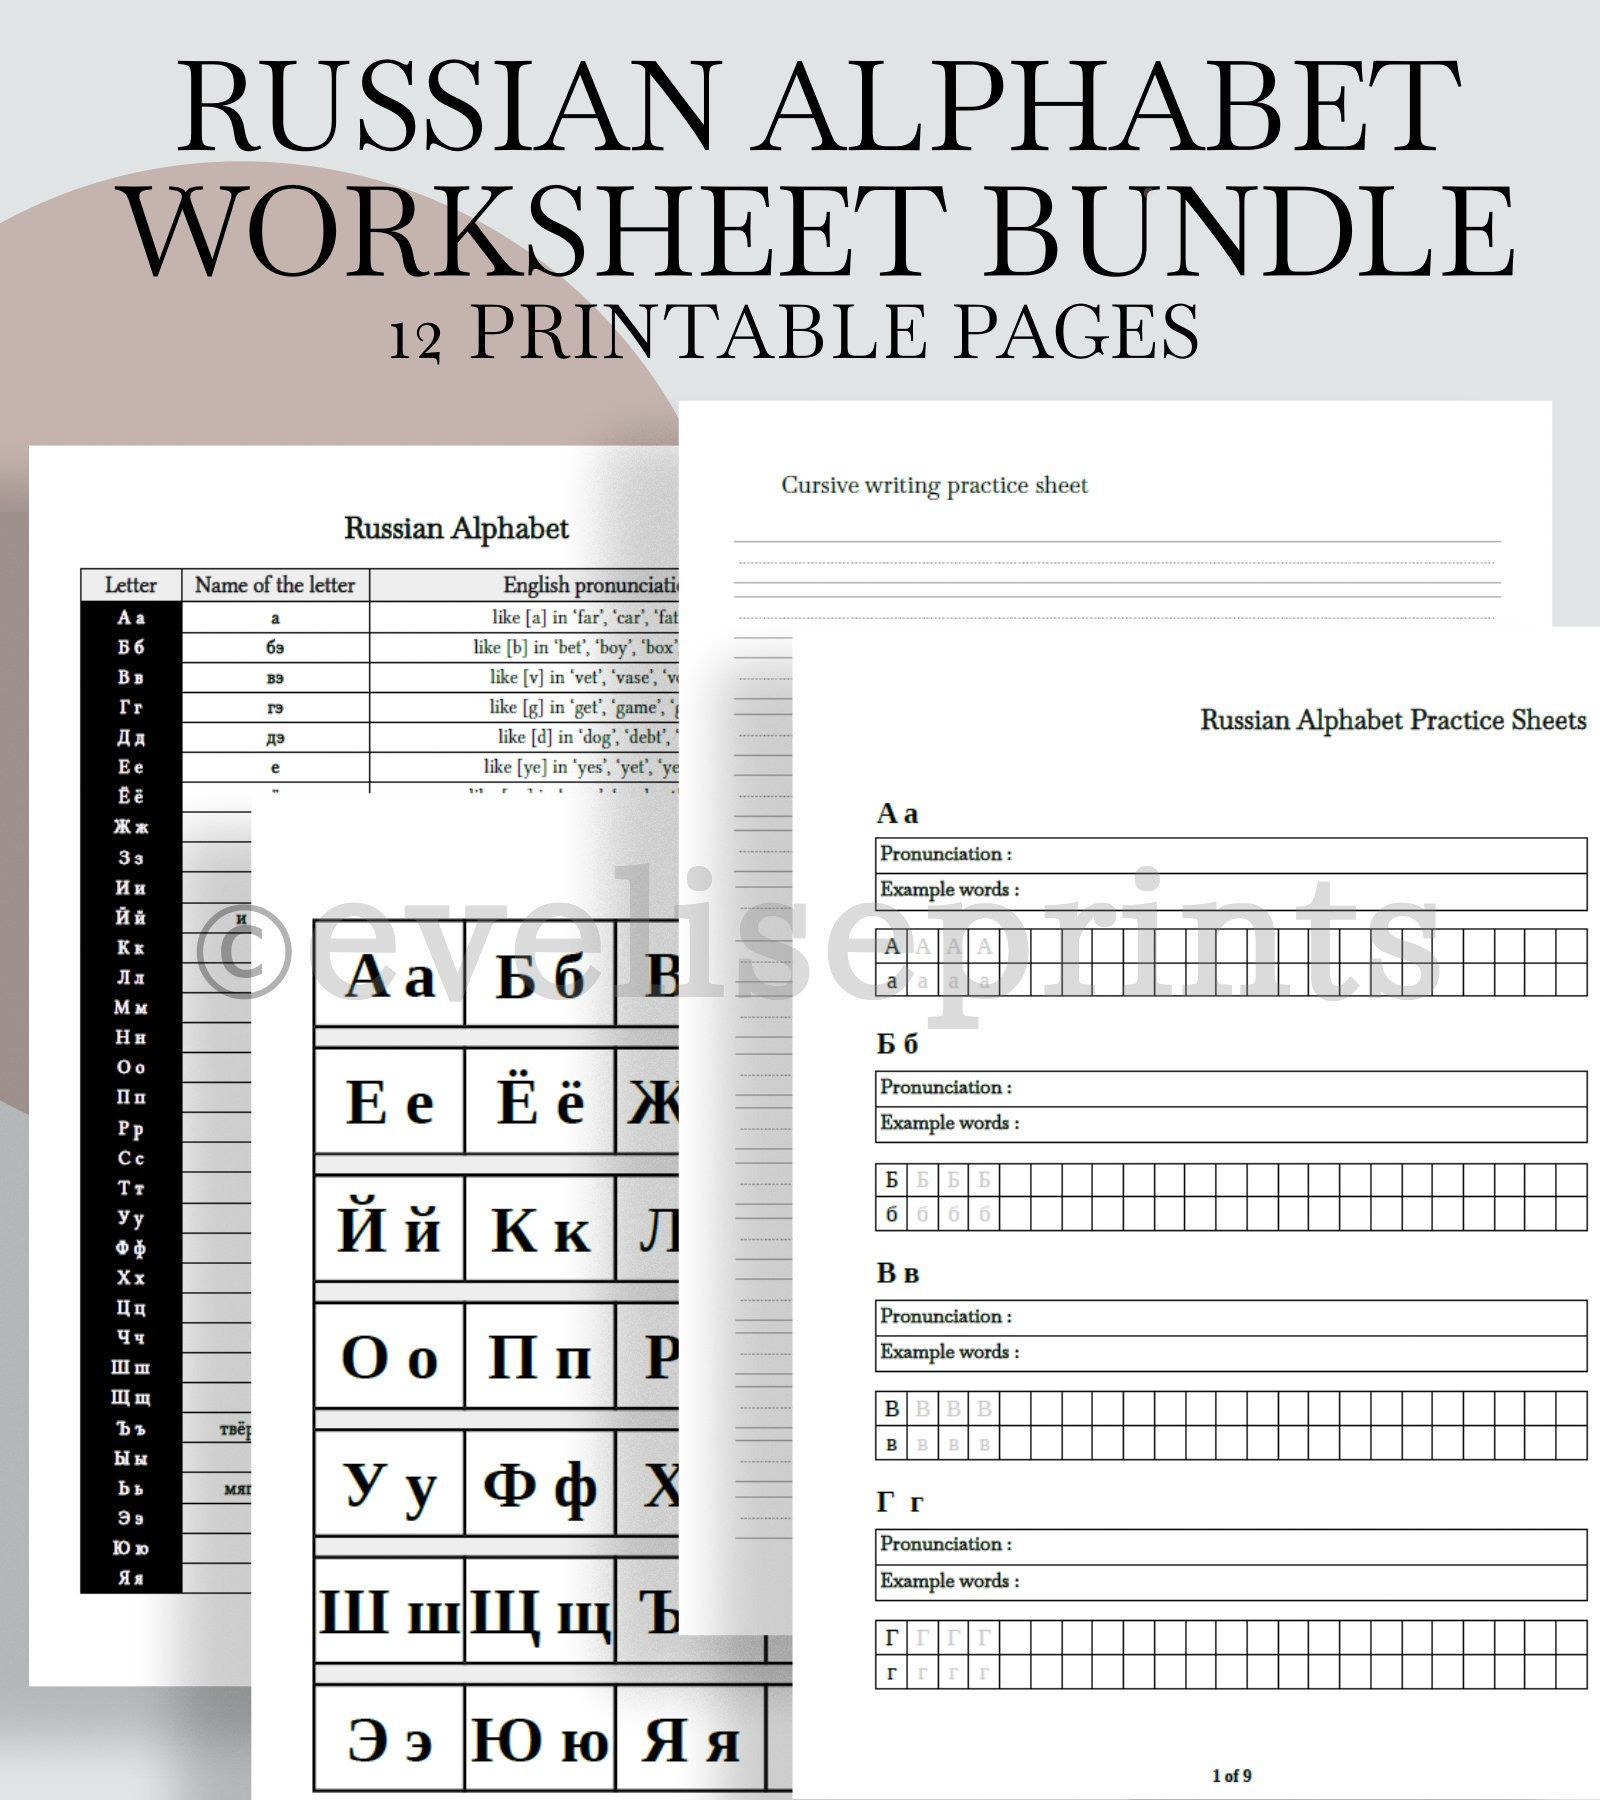 Pin By Oung Sararith On Languages Cursive Writing Practice Sheets Alphabet Practice Sheets Writing Practice Sheets Russian cursive writing practice sheet